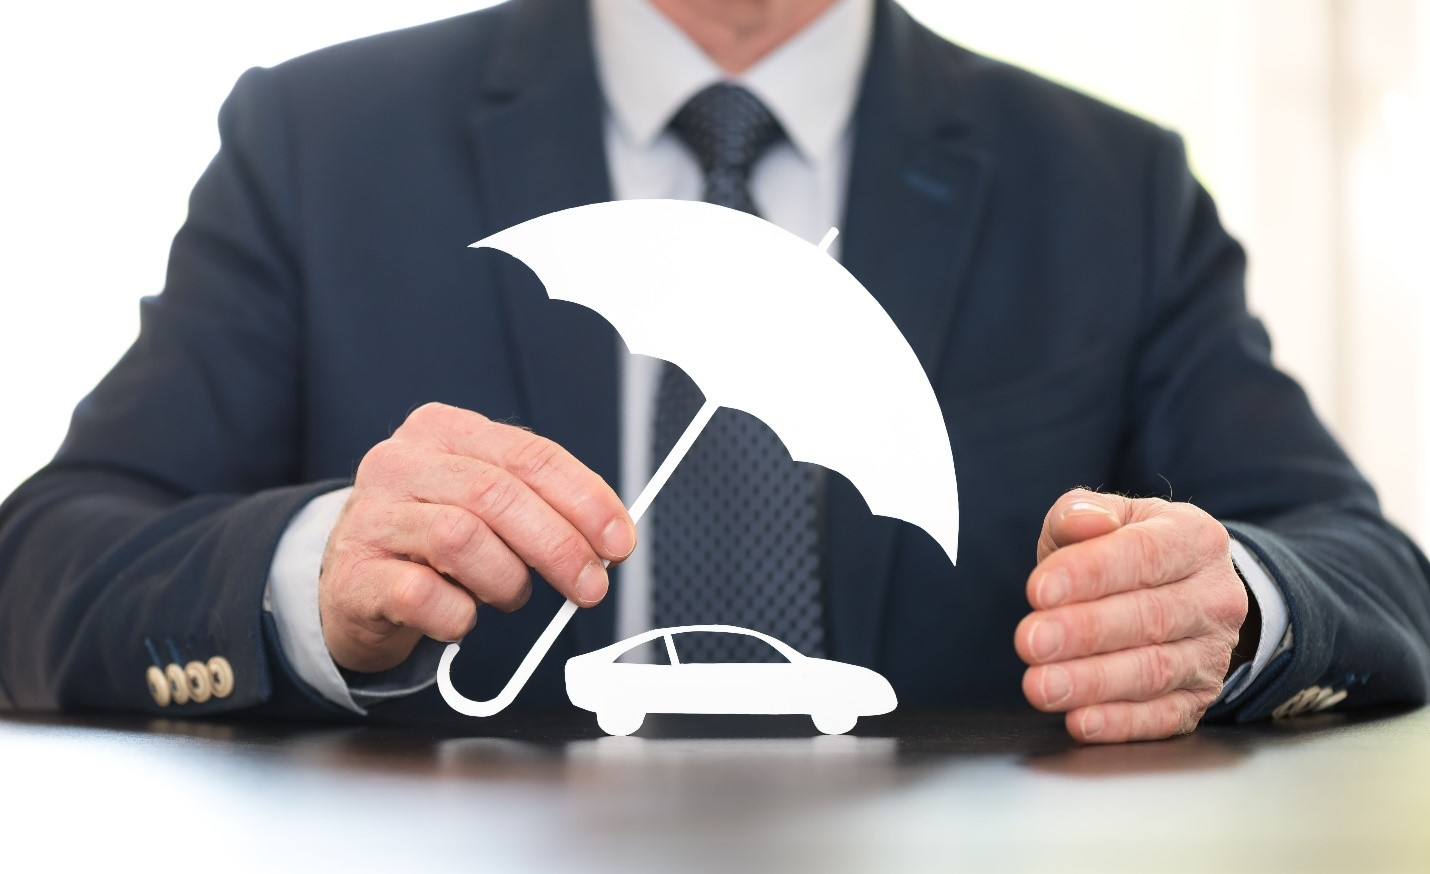 a businessman in a suit and tie holding a white cut-out umbrella over a white cut-out car to indicate car insurance coverage protection against hail damage